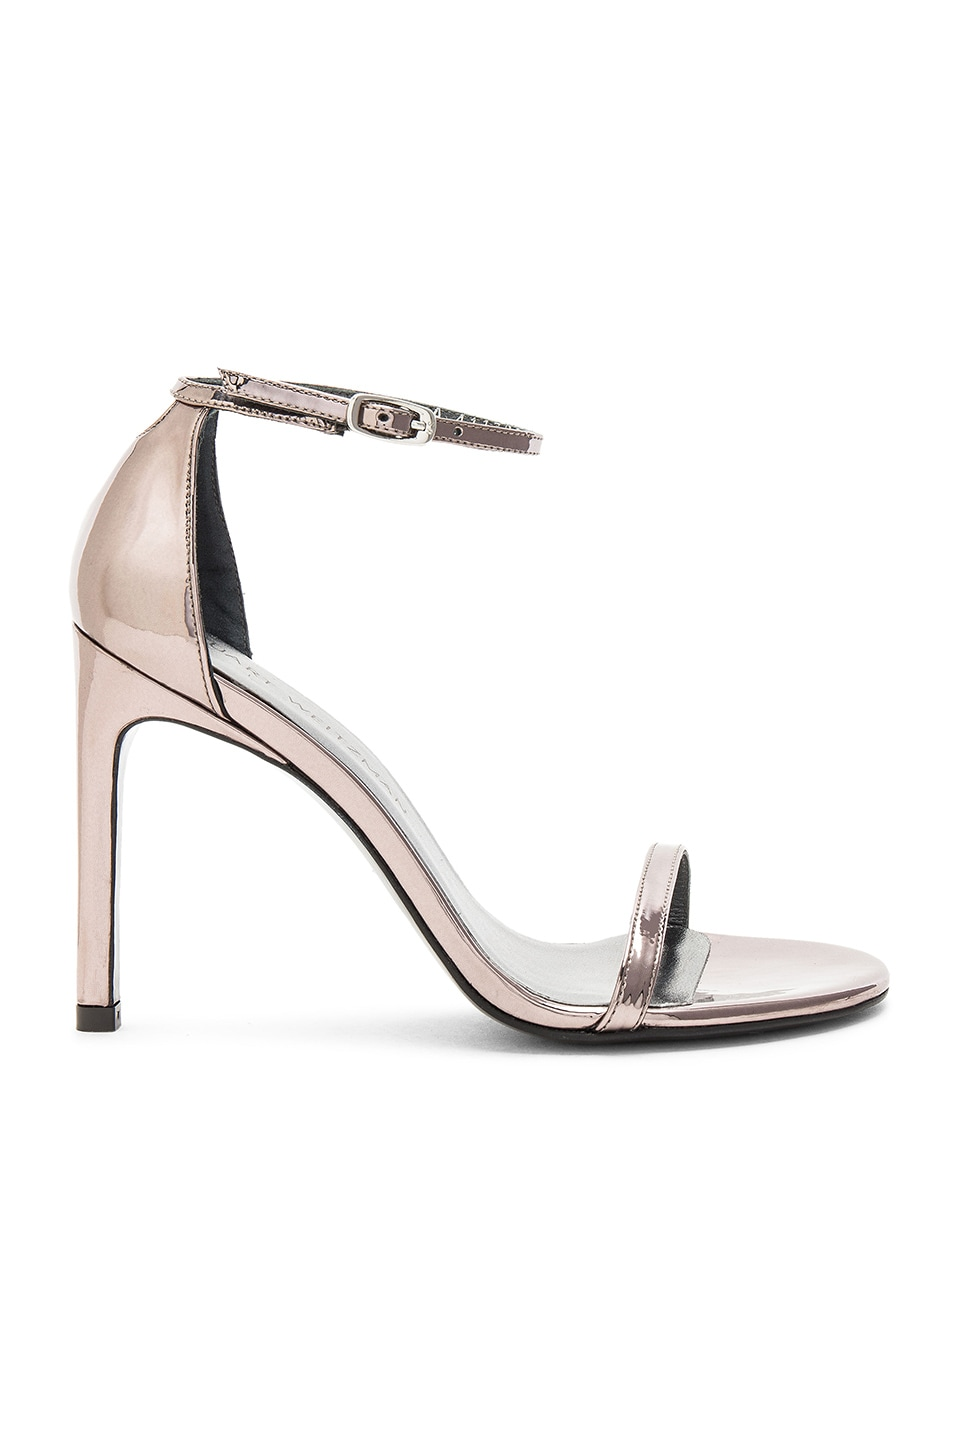 Stuart Weitzman Nudistsong Heel in Pewter Glass